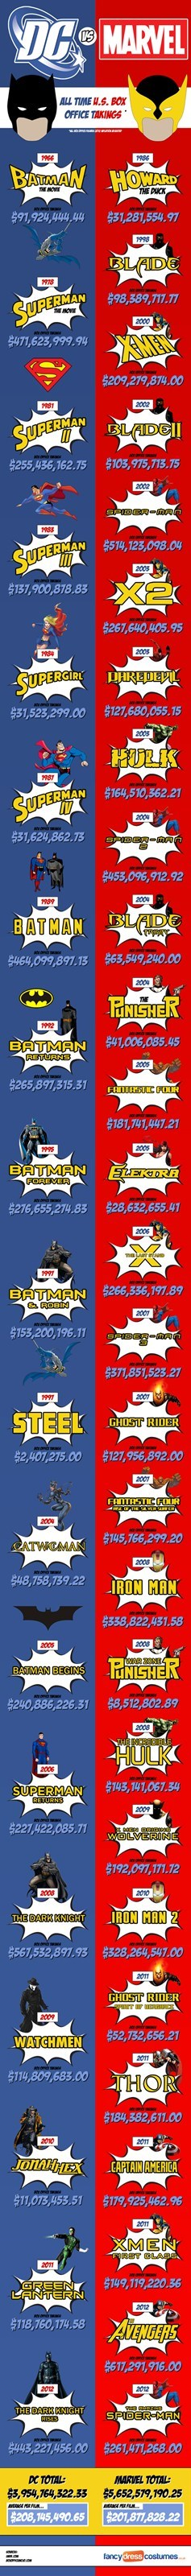 comics DC infographic marvel superheroes - 6621150464